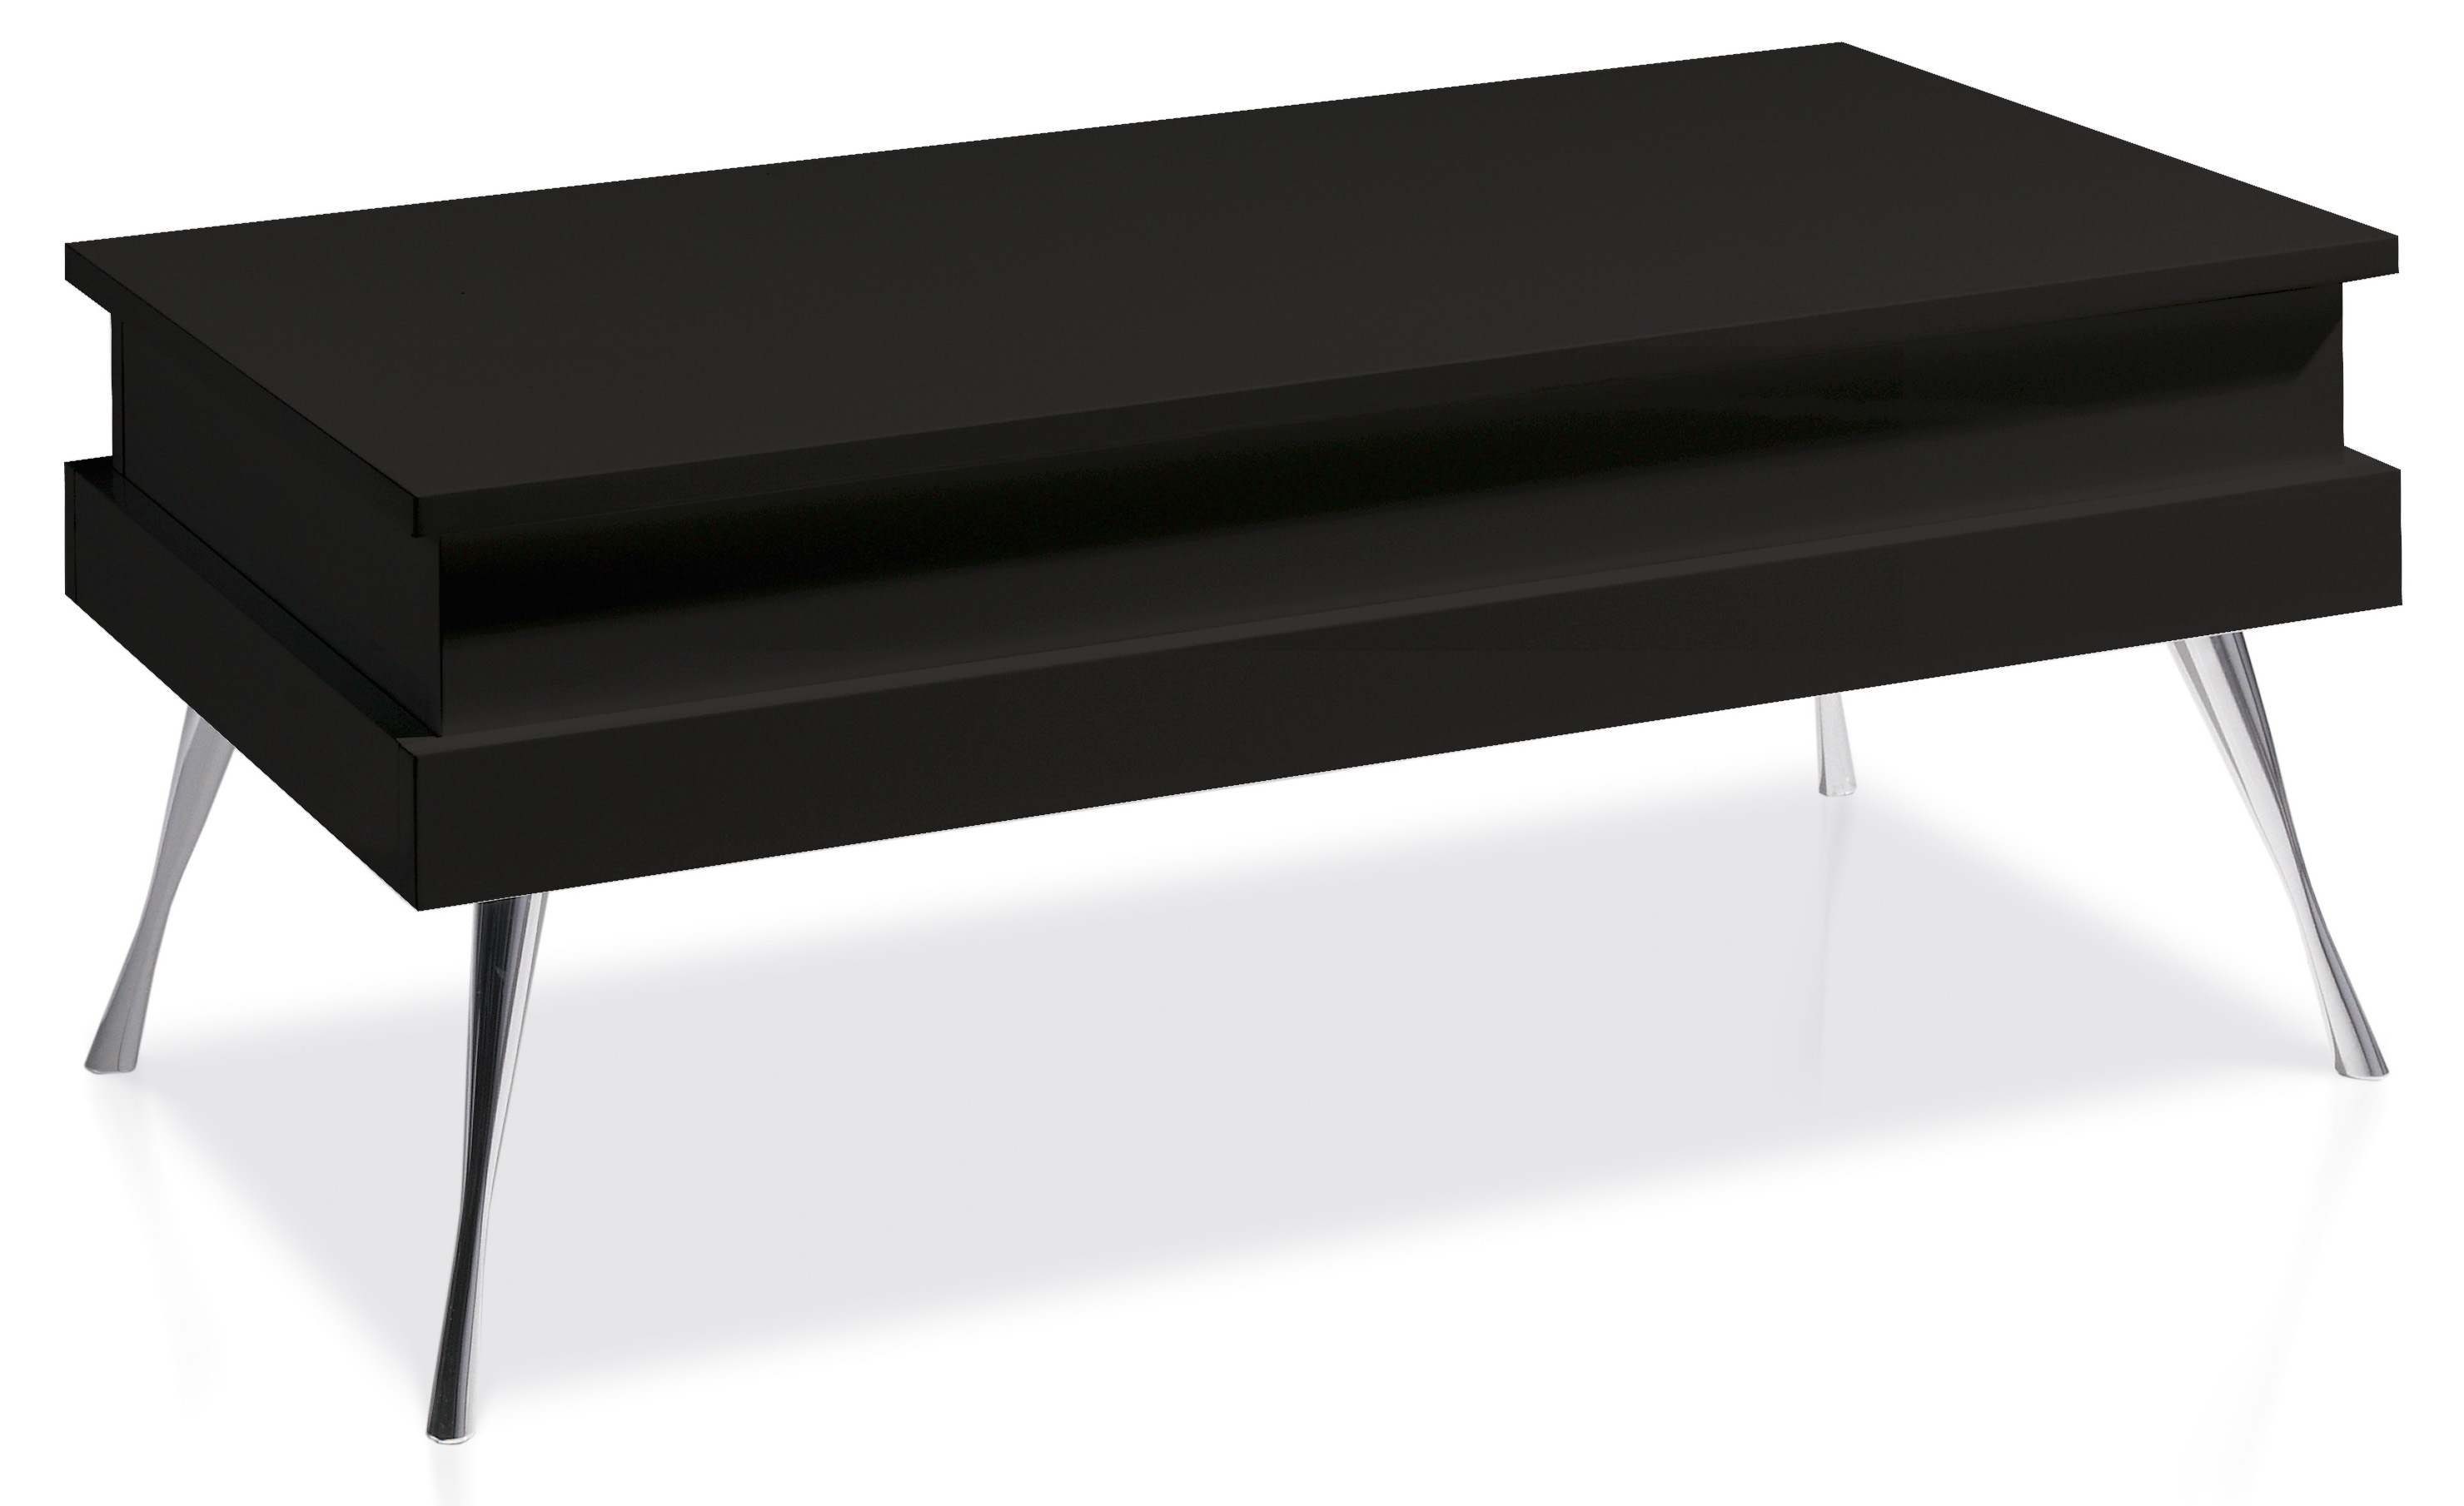 table basse laquee noir maison design. Black Bedroom Furniture Sets. Home Design Ideas